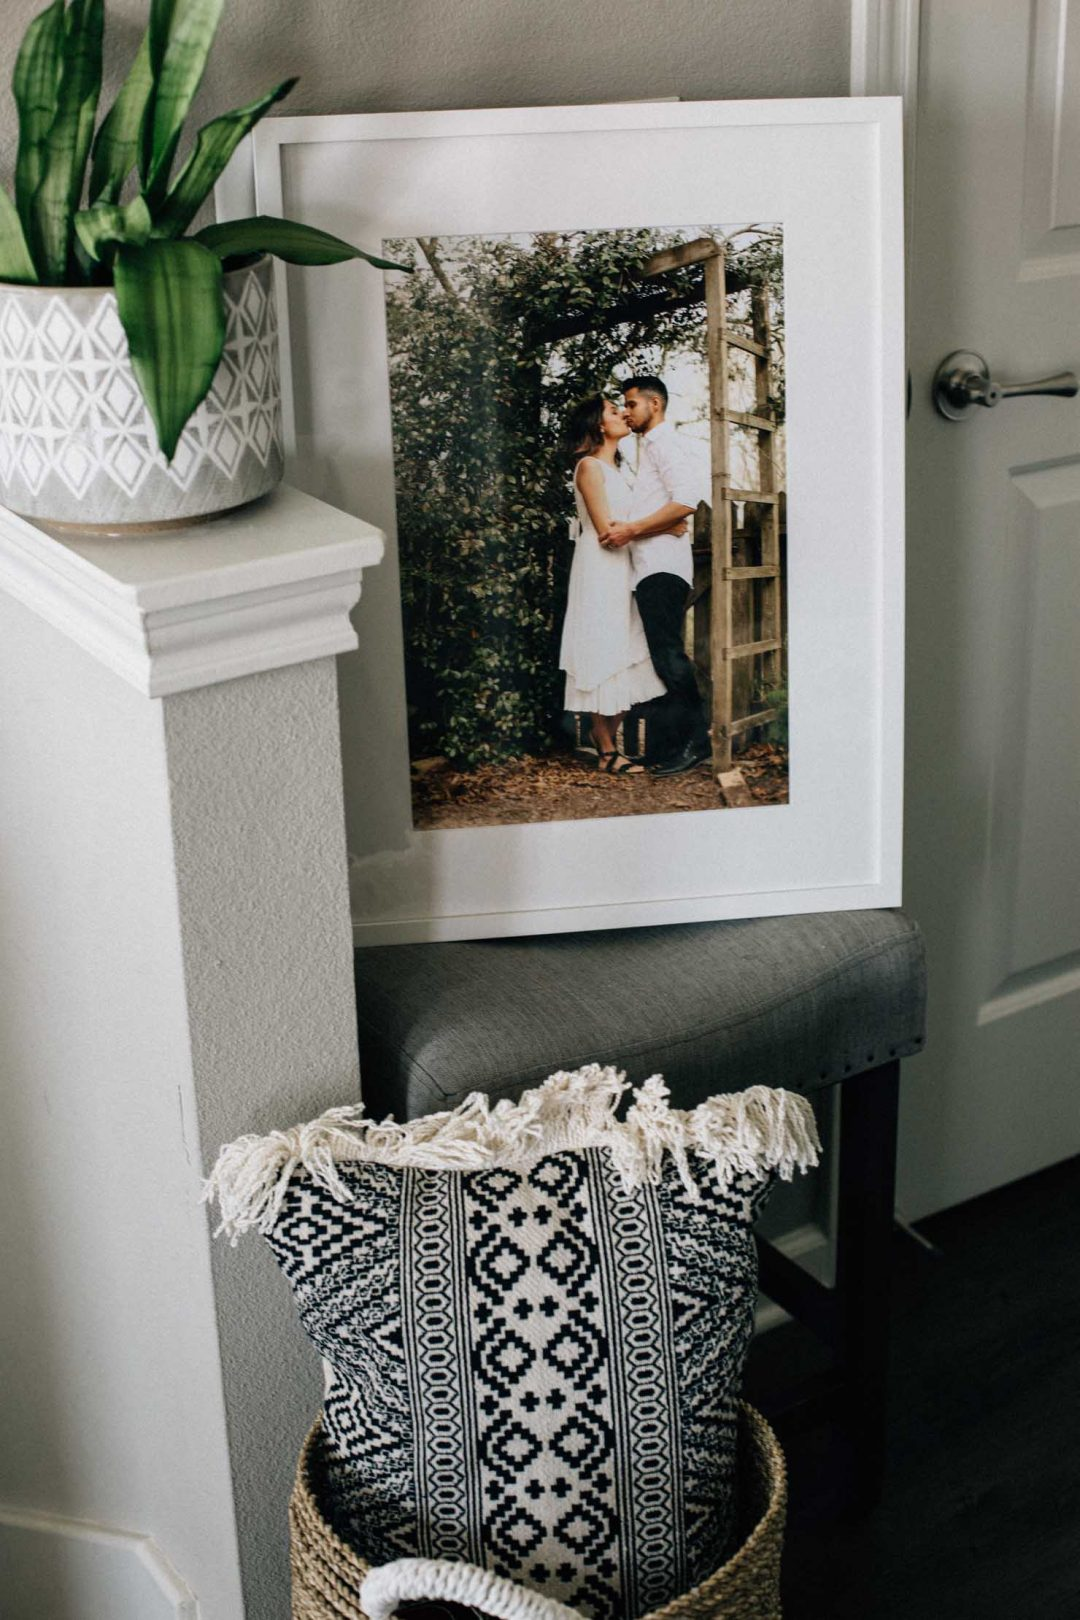 Lifestyle blogger Lilly Beltran of Daily Craving shares vow renewal plans for 10 years of marriage